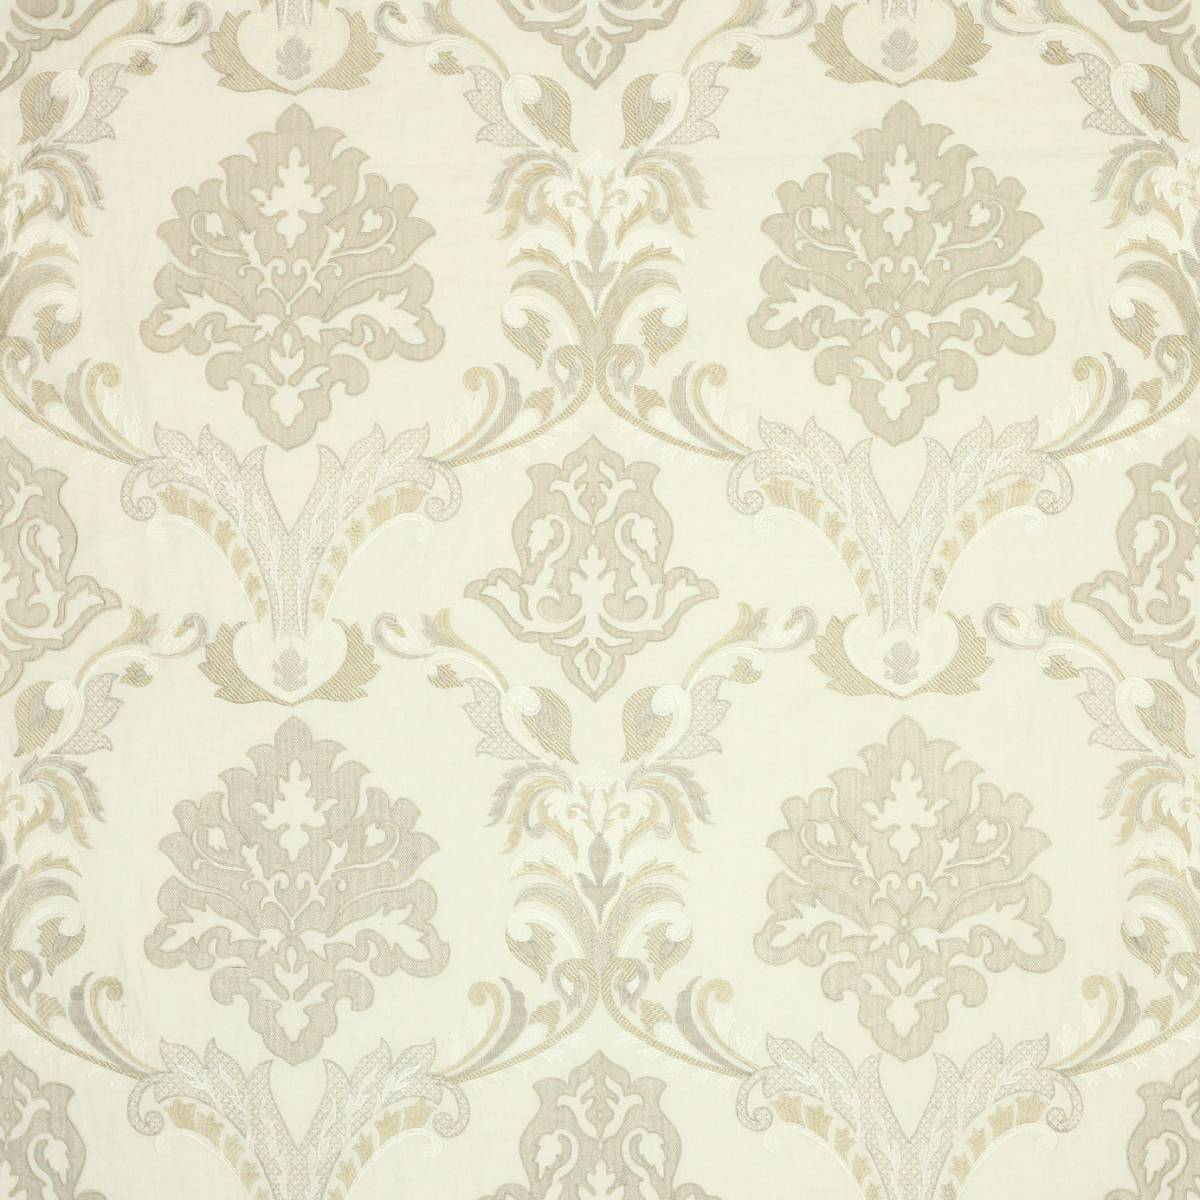 cyrus fabric ivory f4507 01 colefax fowler rosella fabric collection. Black Bedroom Furniture Sets. Home Design Ideas